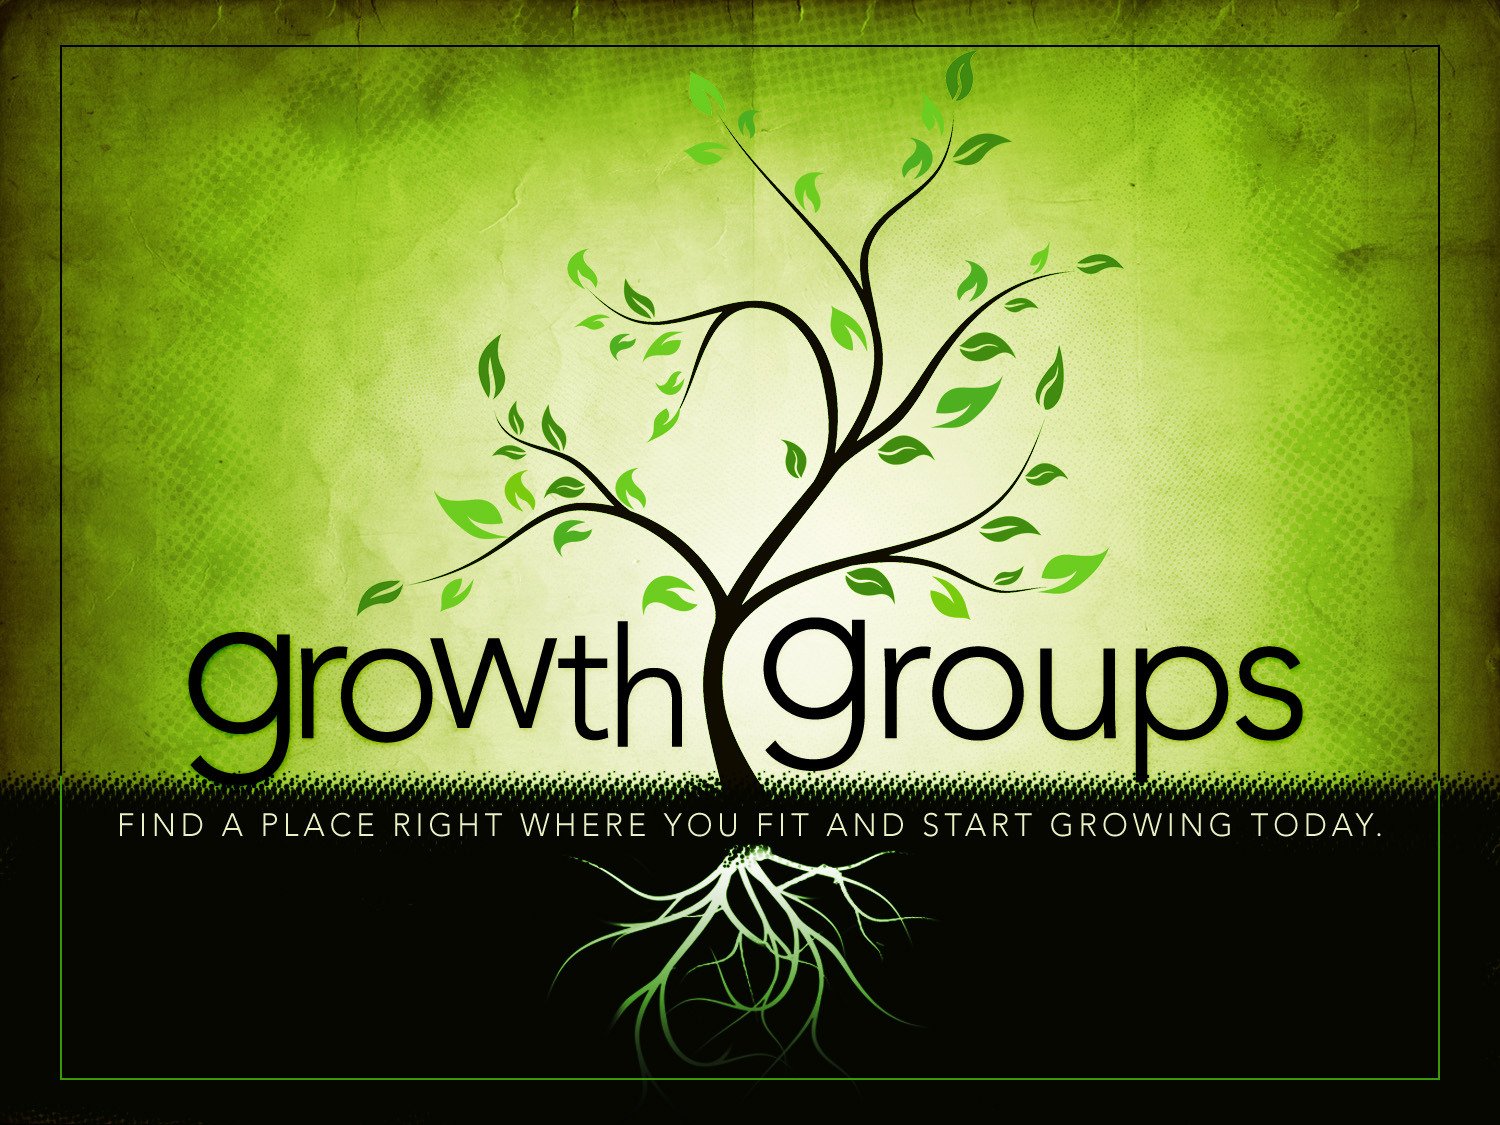 Growth Groups 2.0